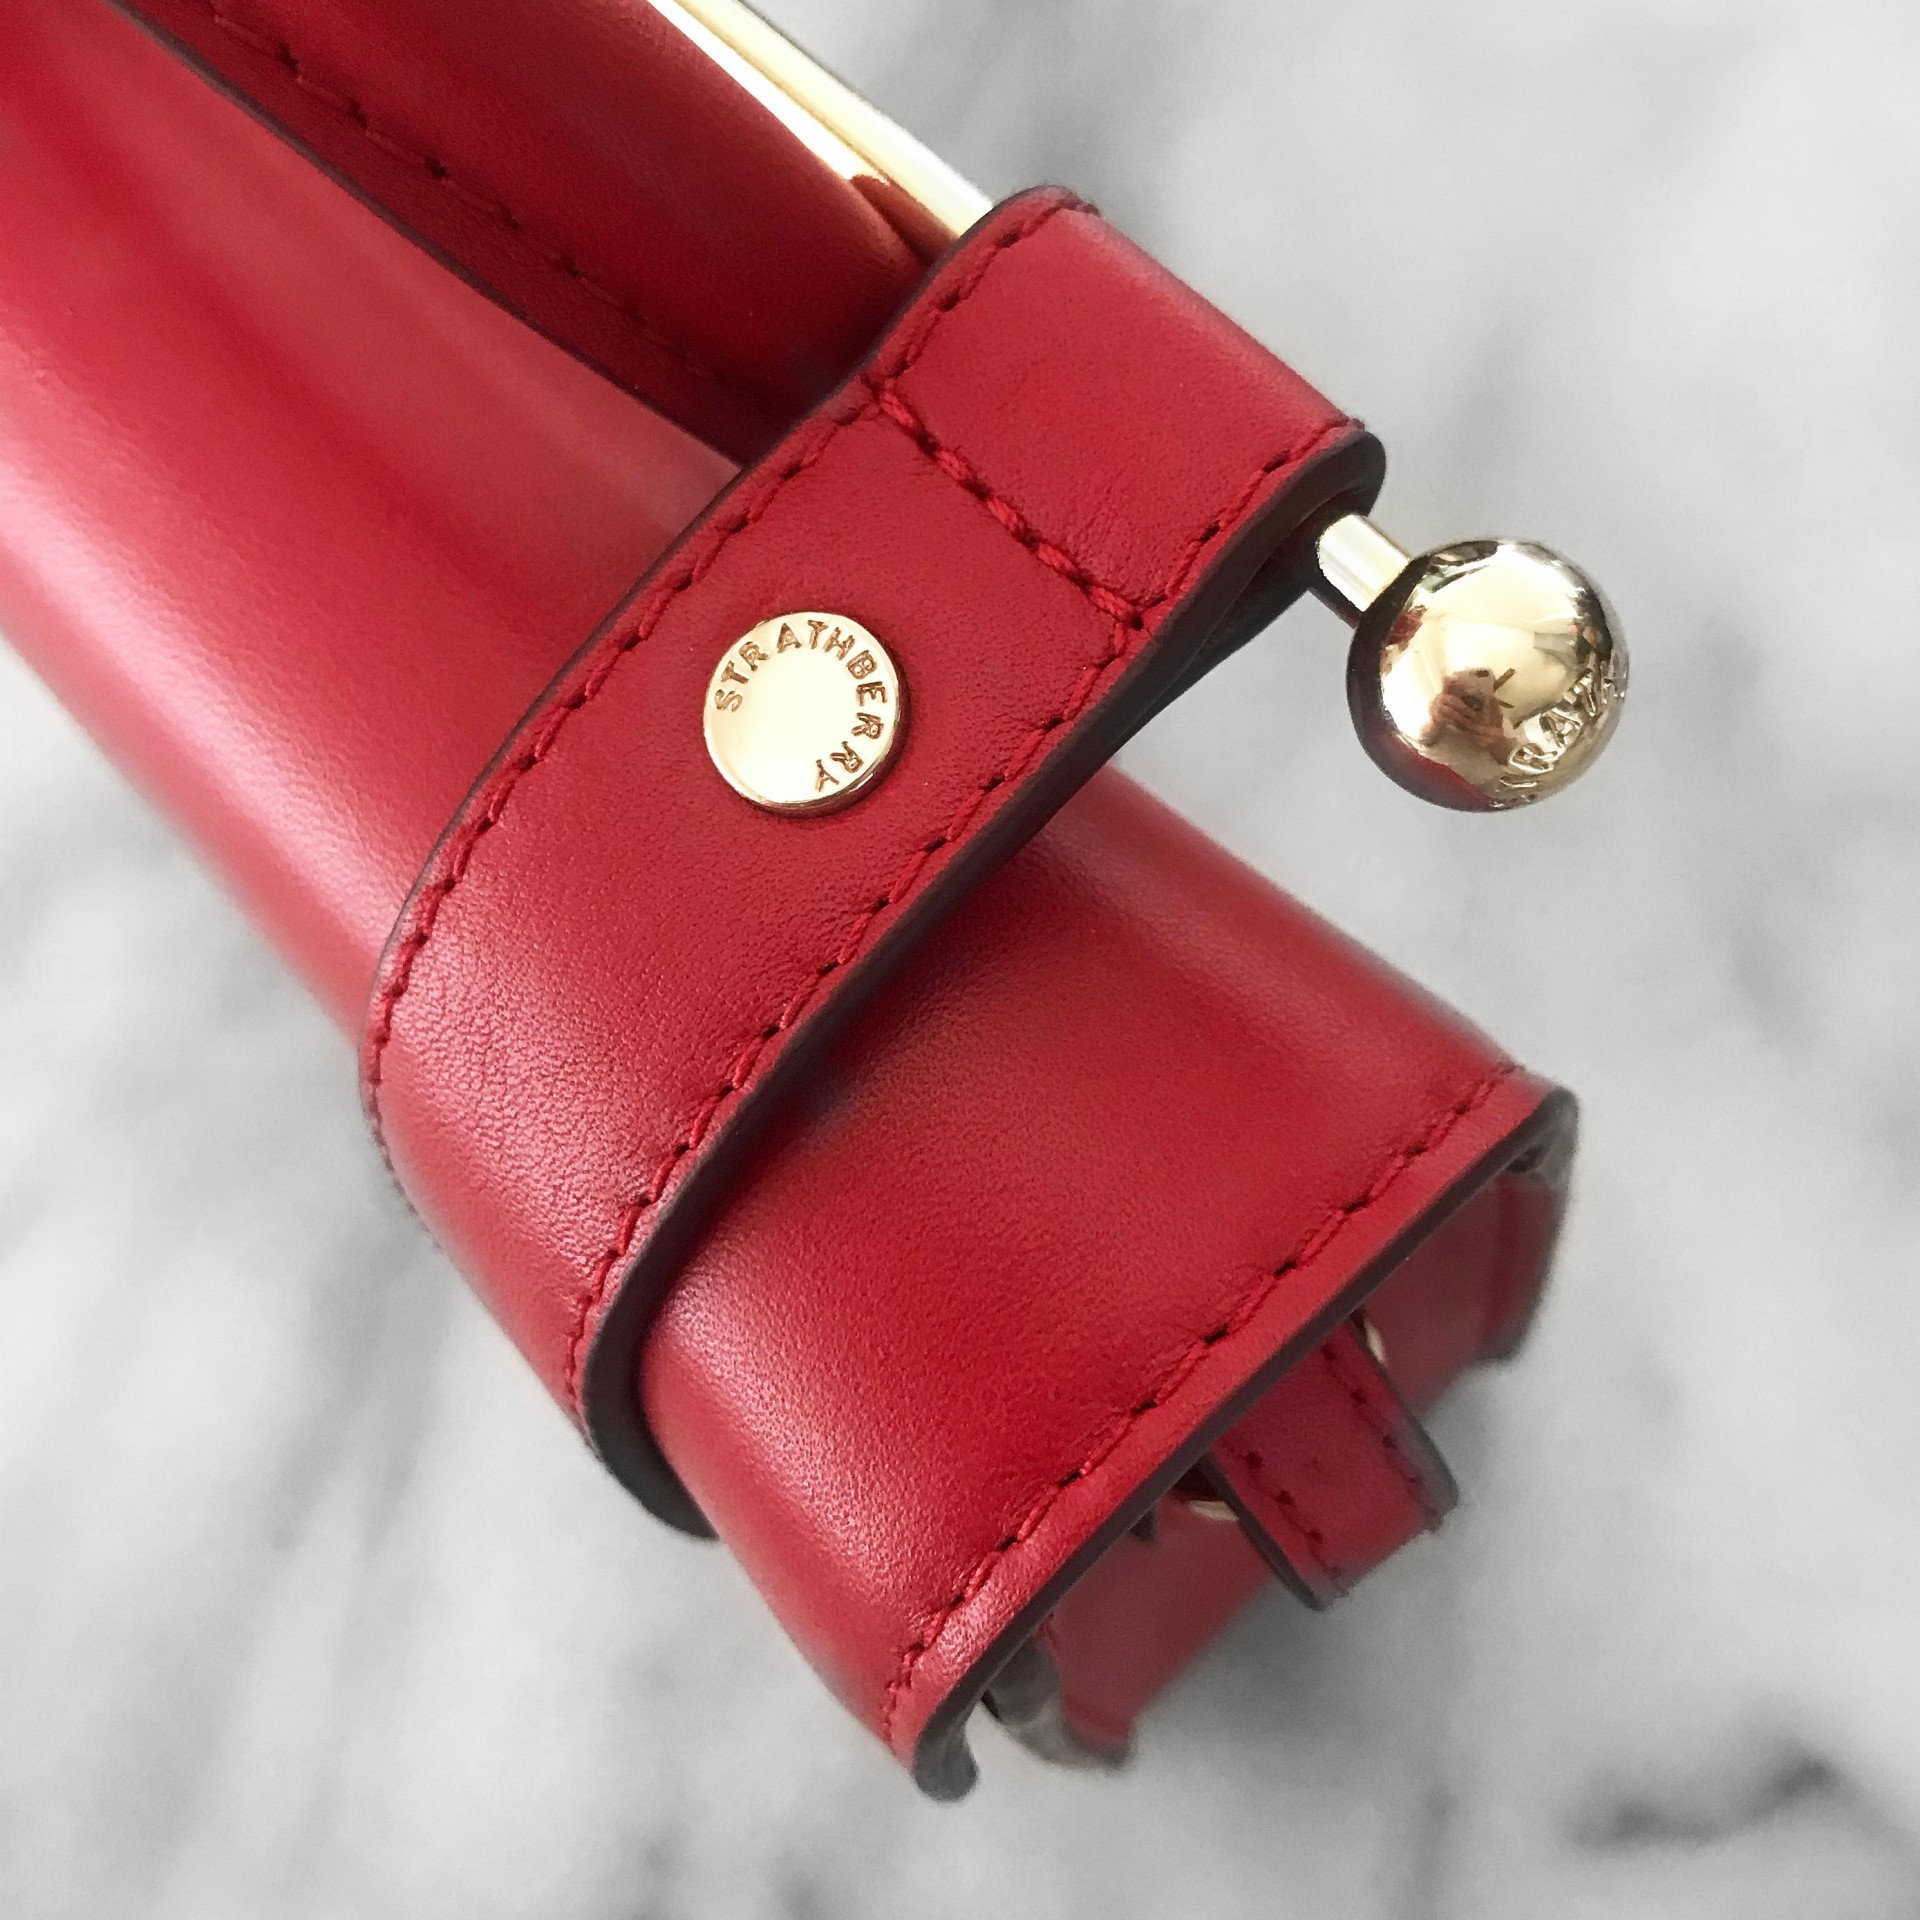 Strathberry Ruby Red MC Nano Hardware Details | CoffeeAndHandbags.com